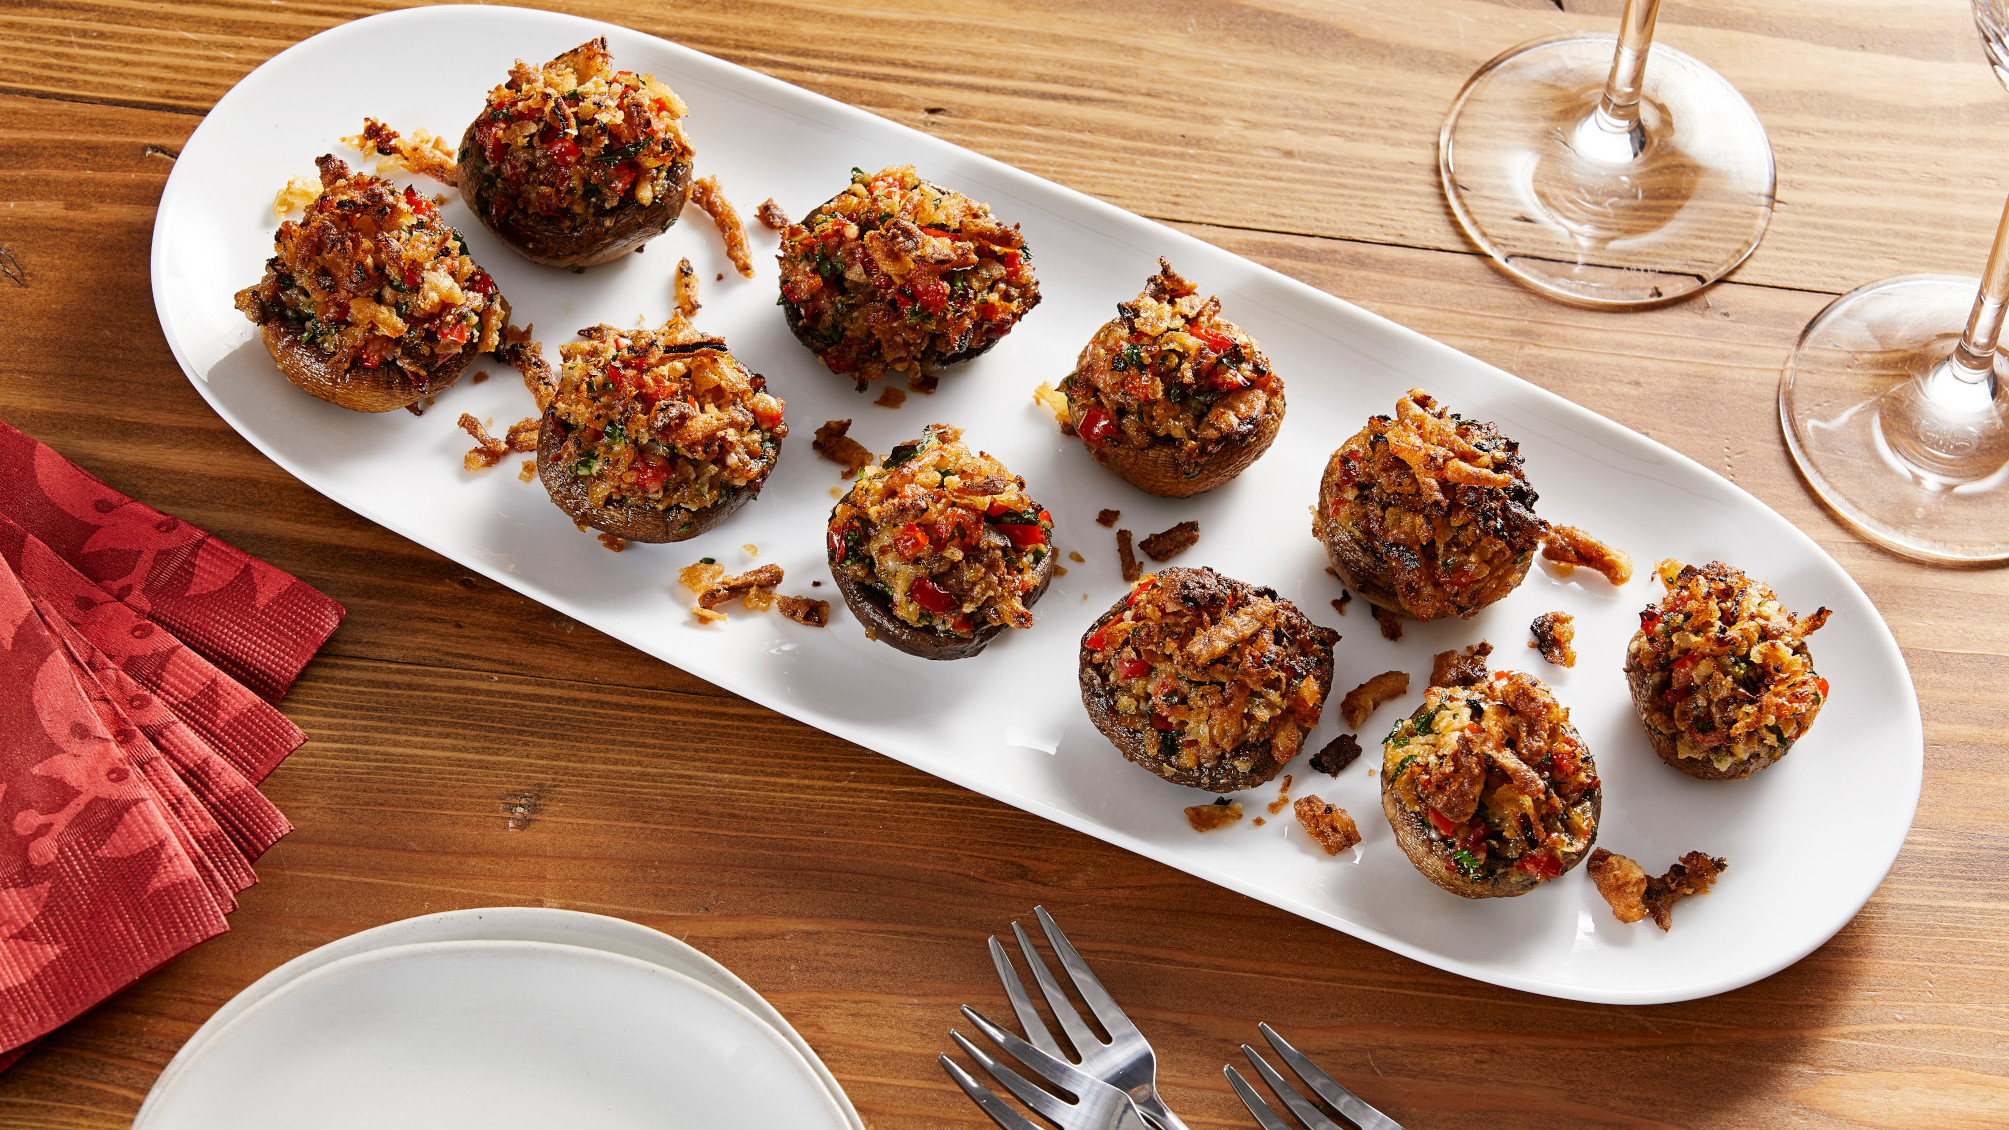 Savory_Stuffed_Mushrooms_151.jpg